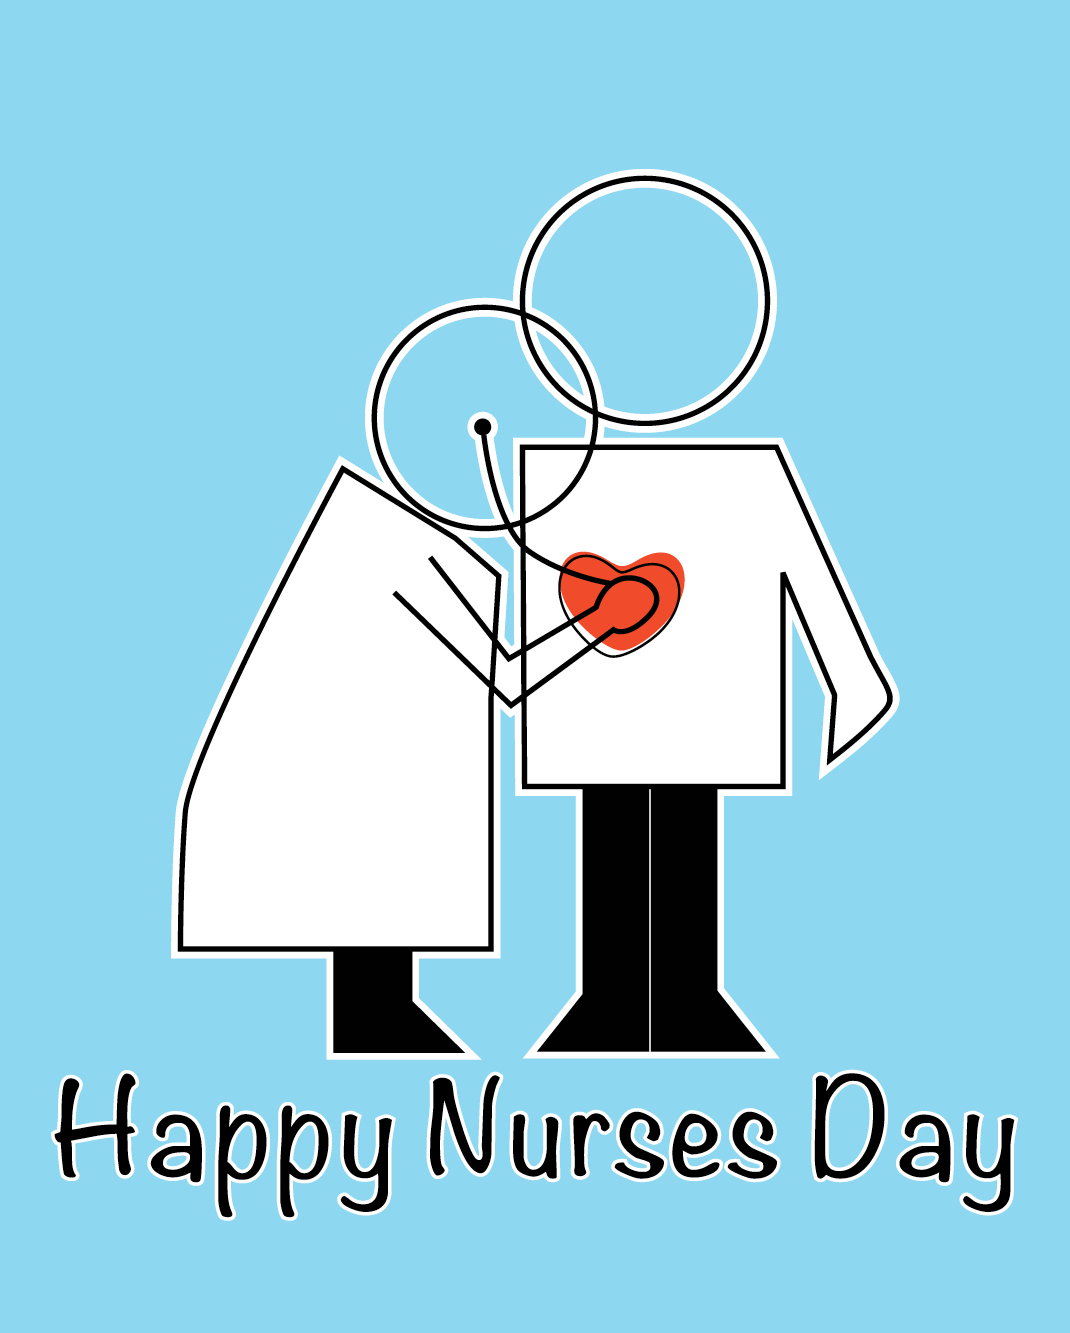 Happy Nurses Day | Pugsleyprints - Nurses Day Cards Free Printable